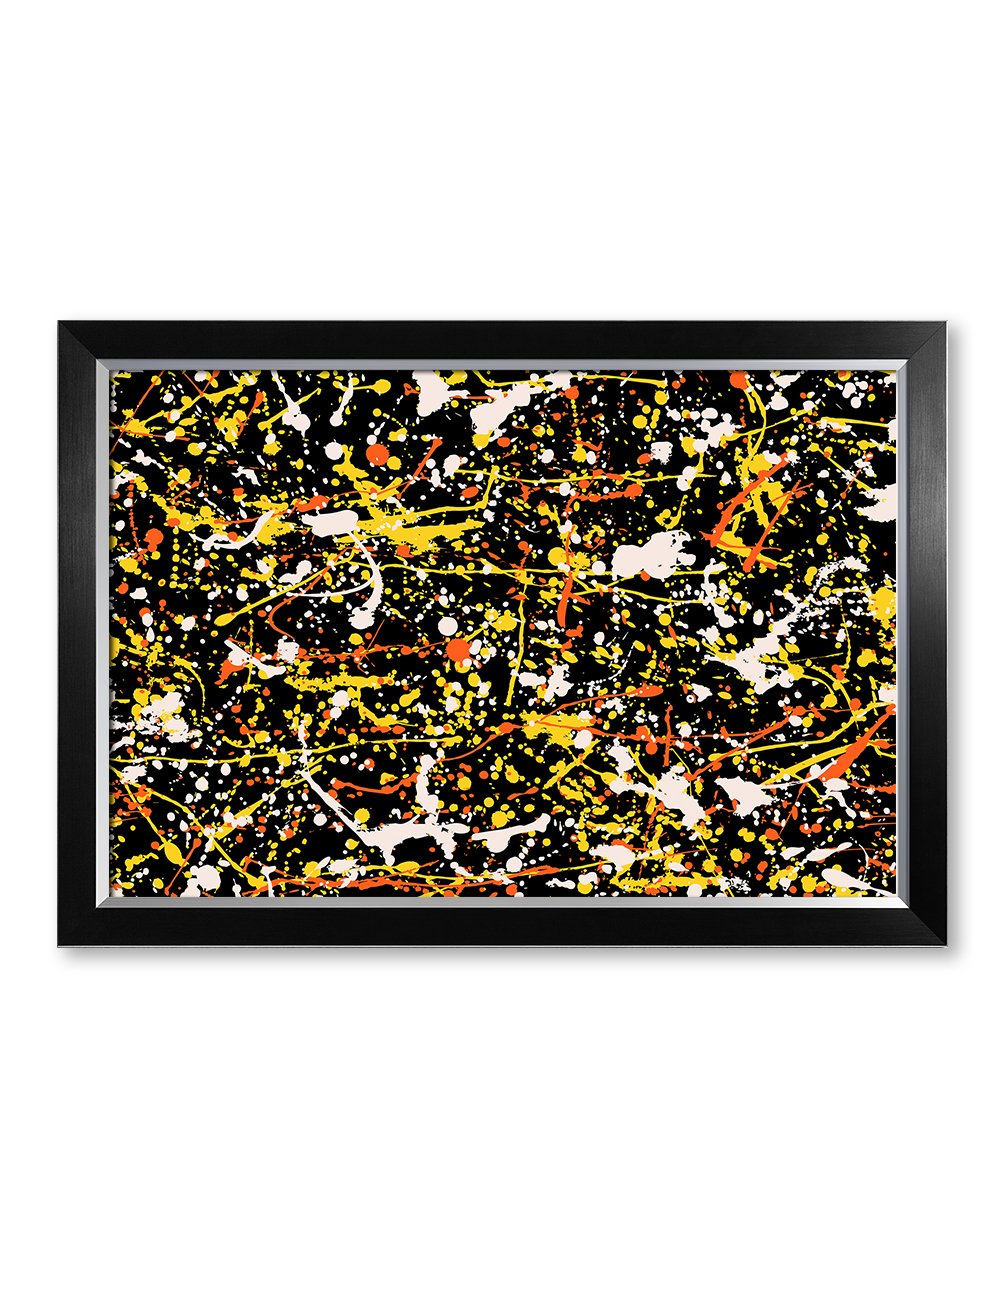 IPIC - Abstract Jackson Pollock Style Artwork. Giclee Print on Canvas Wall Art for Home Decor. Framed size: 33x23'' by IPIC